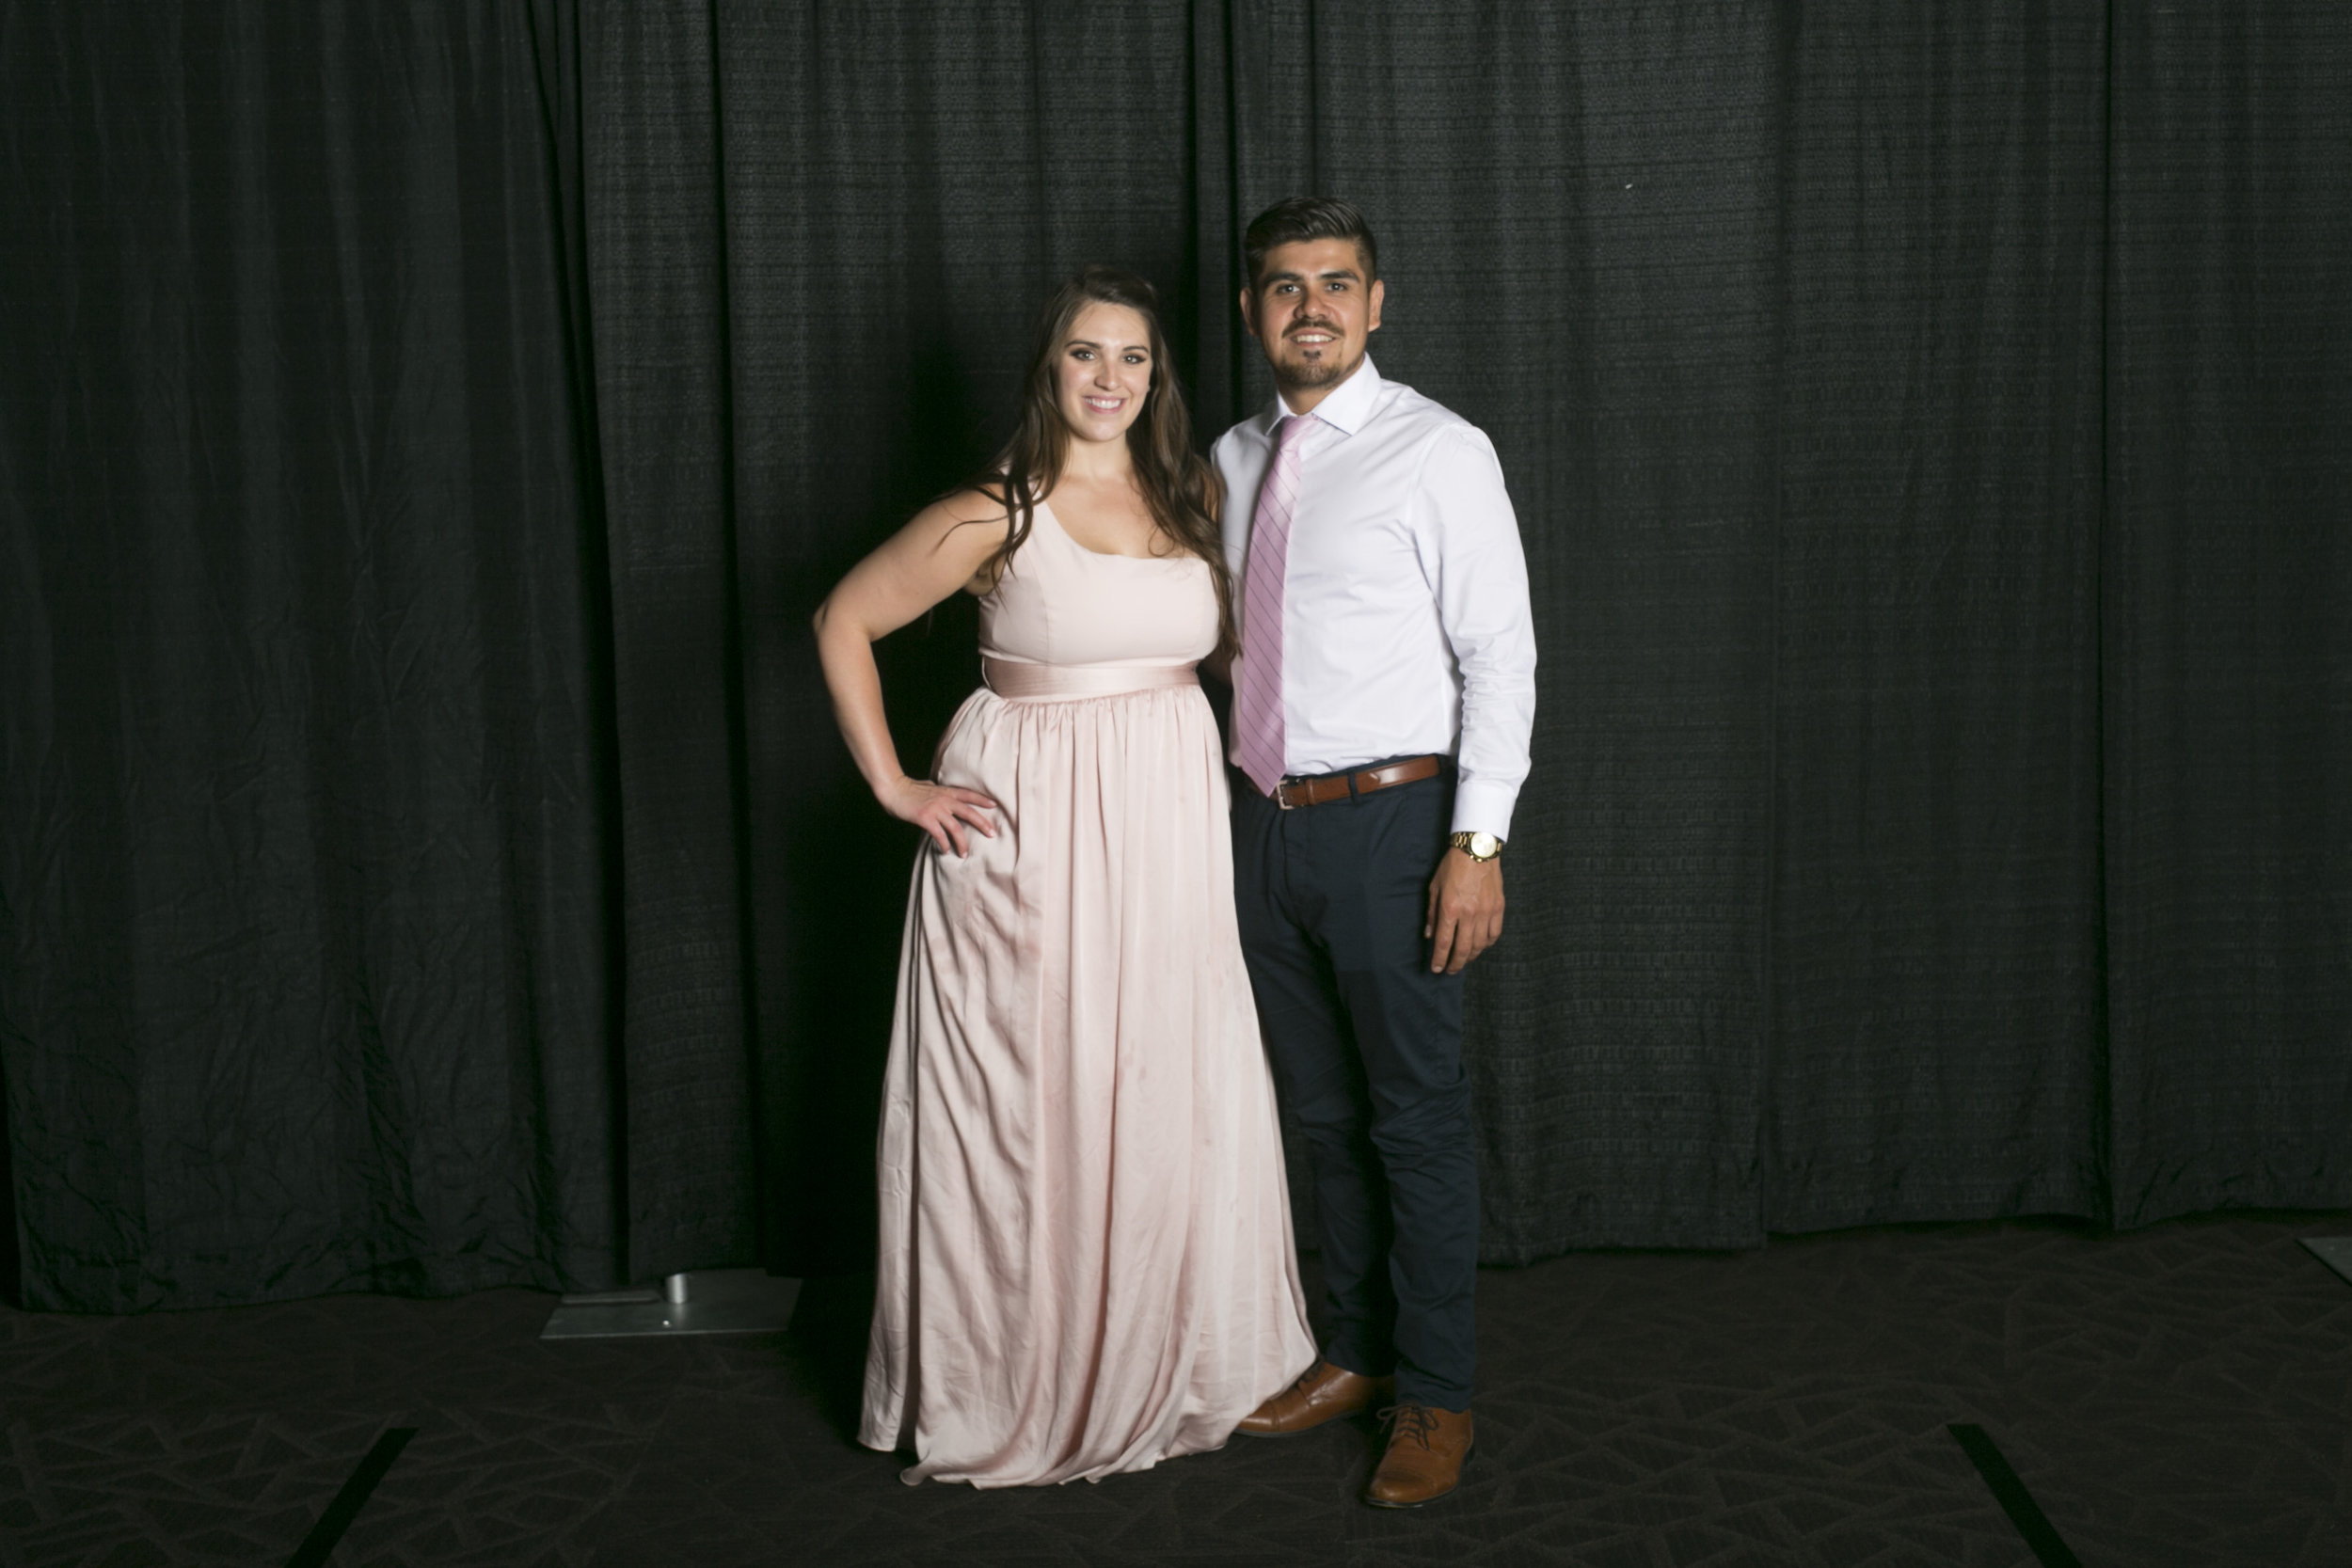 wedding photo booth-160.jpg